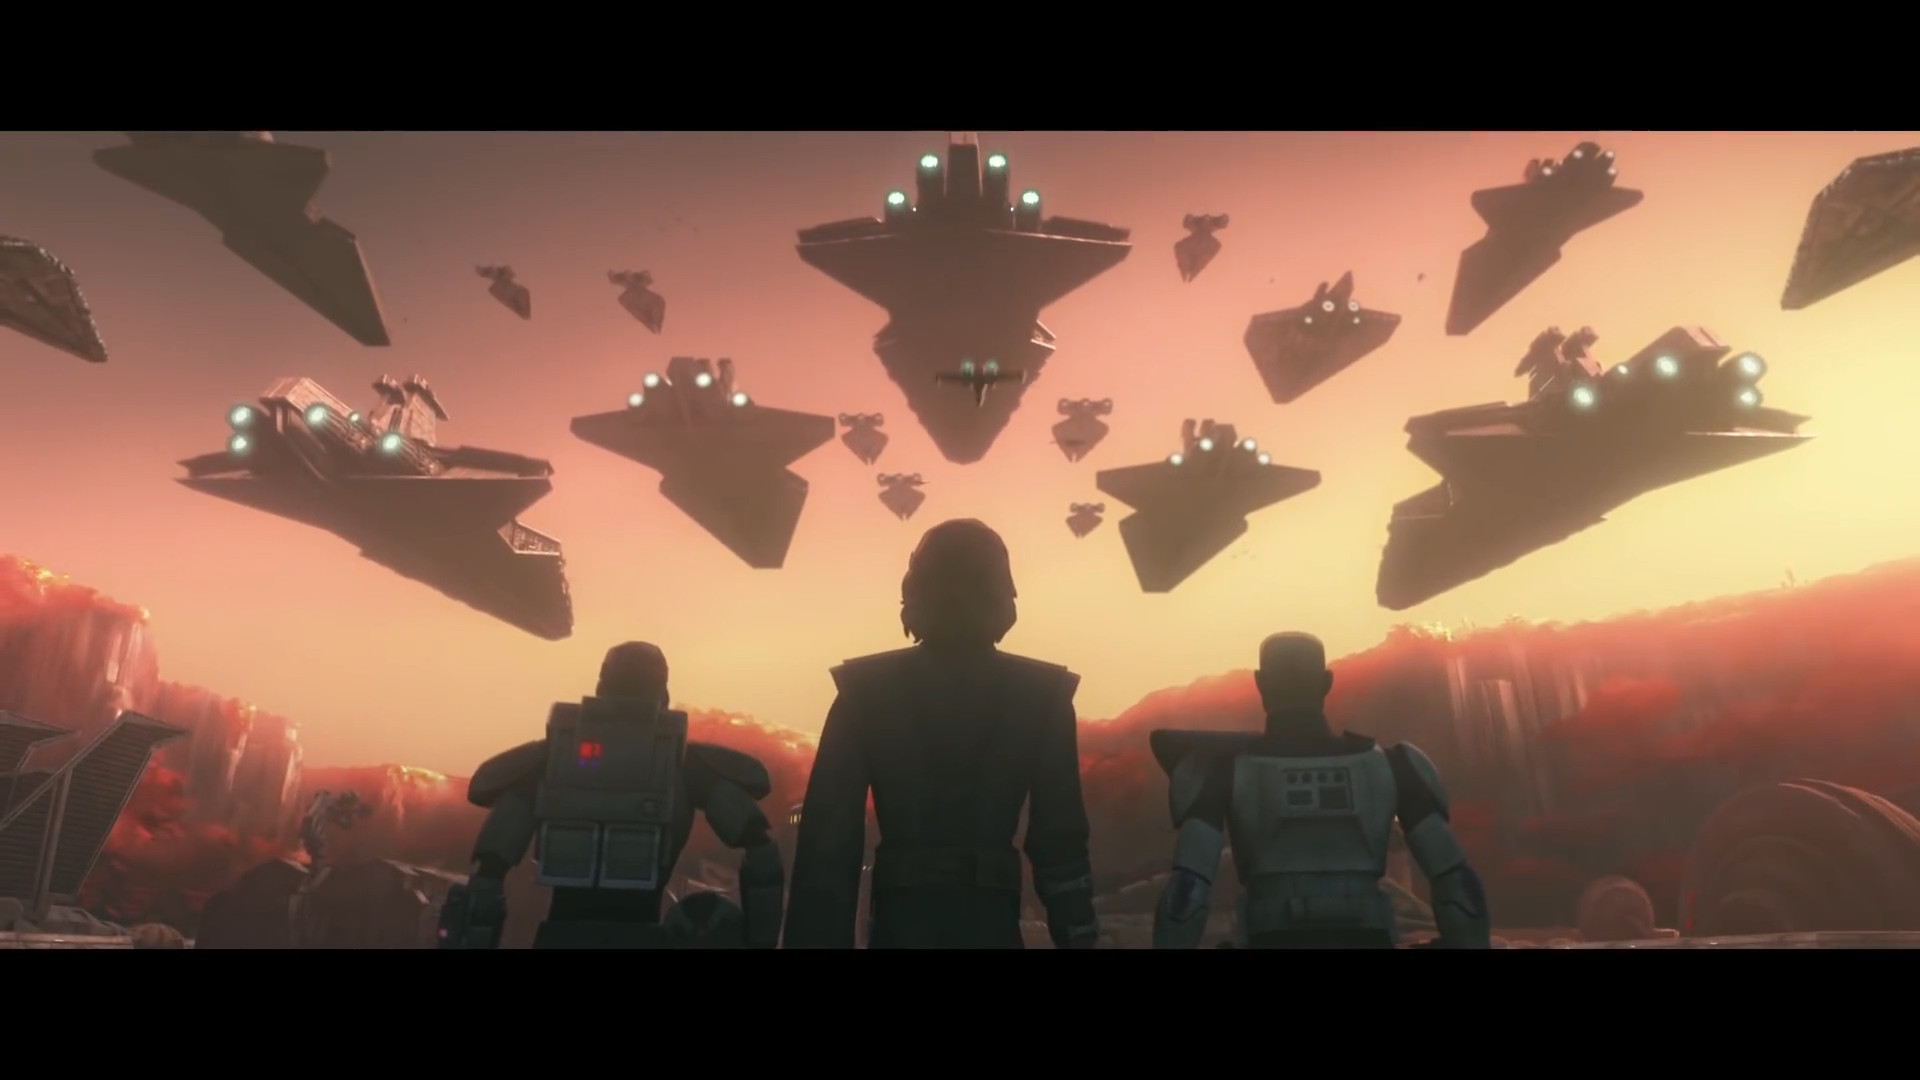 clone-wars-saved-trailer-02